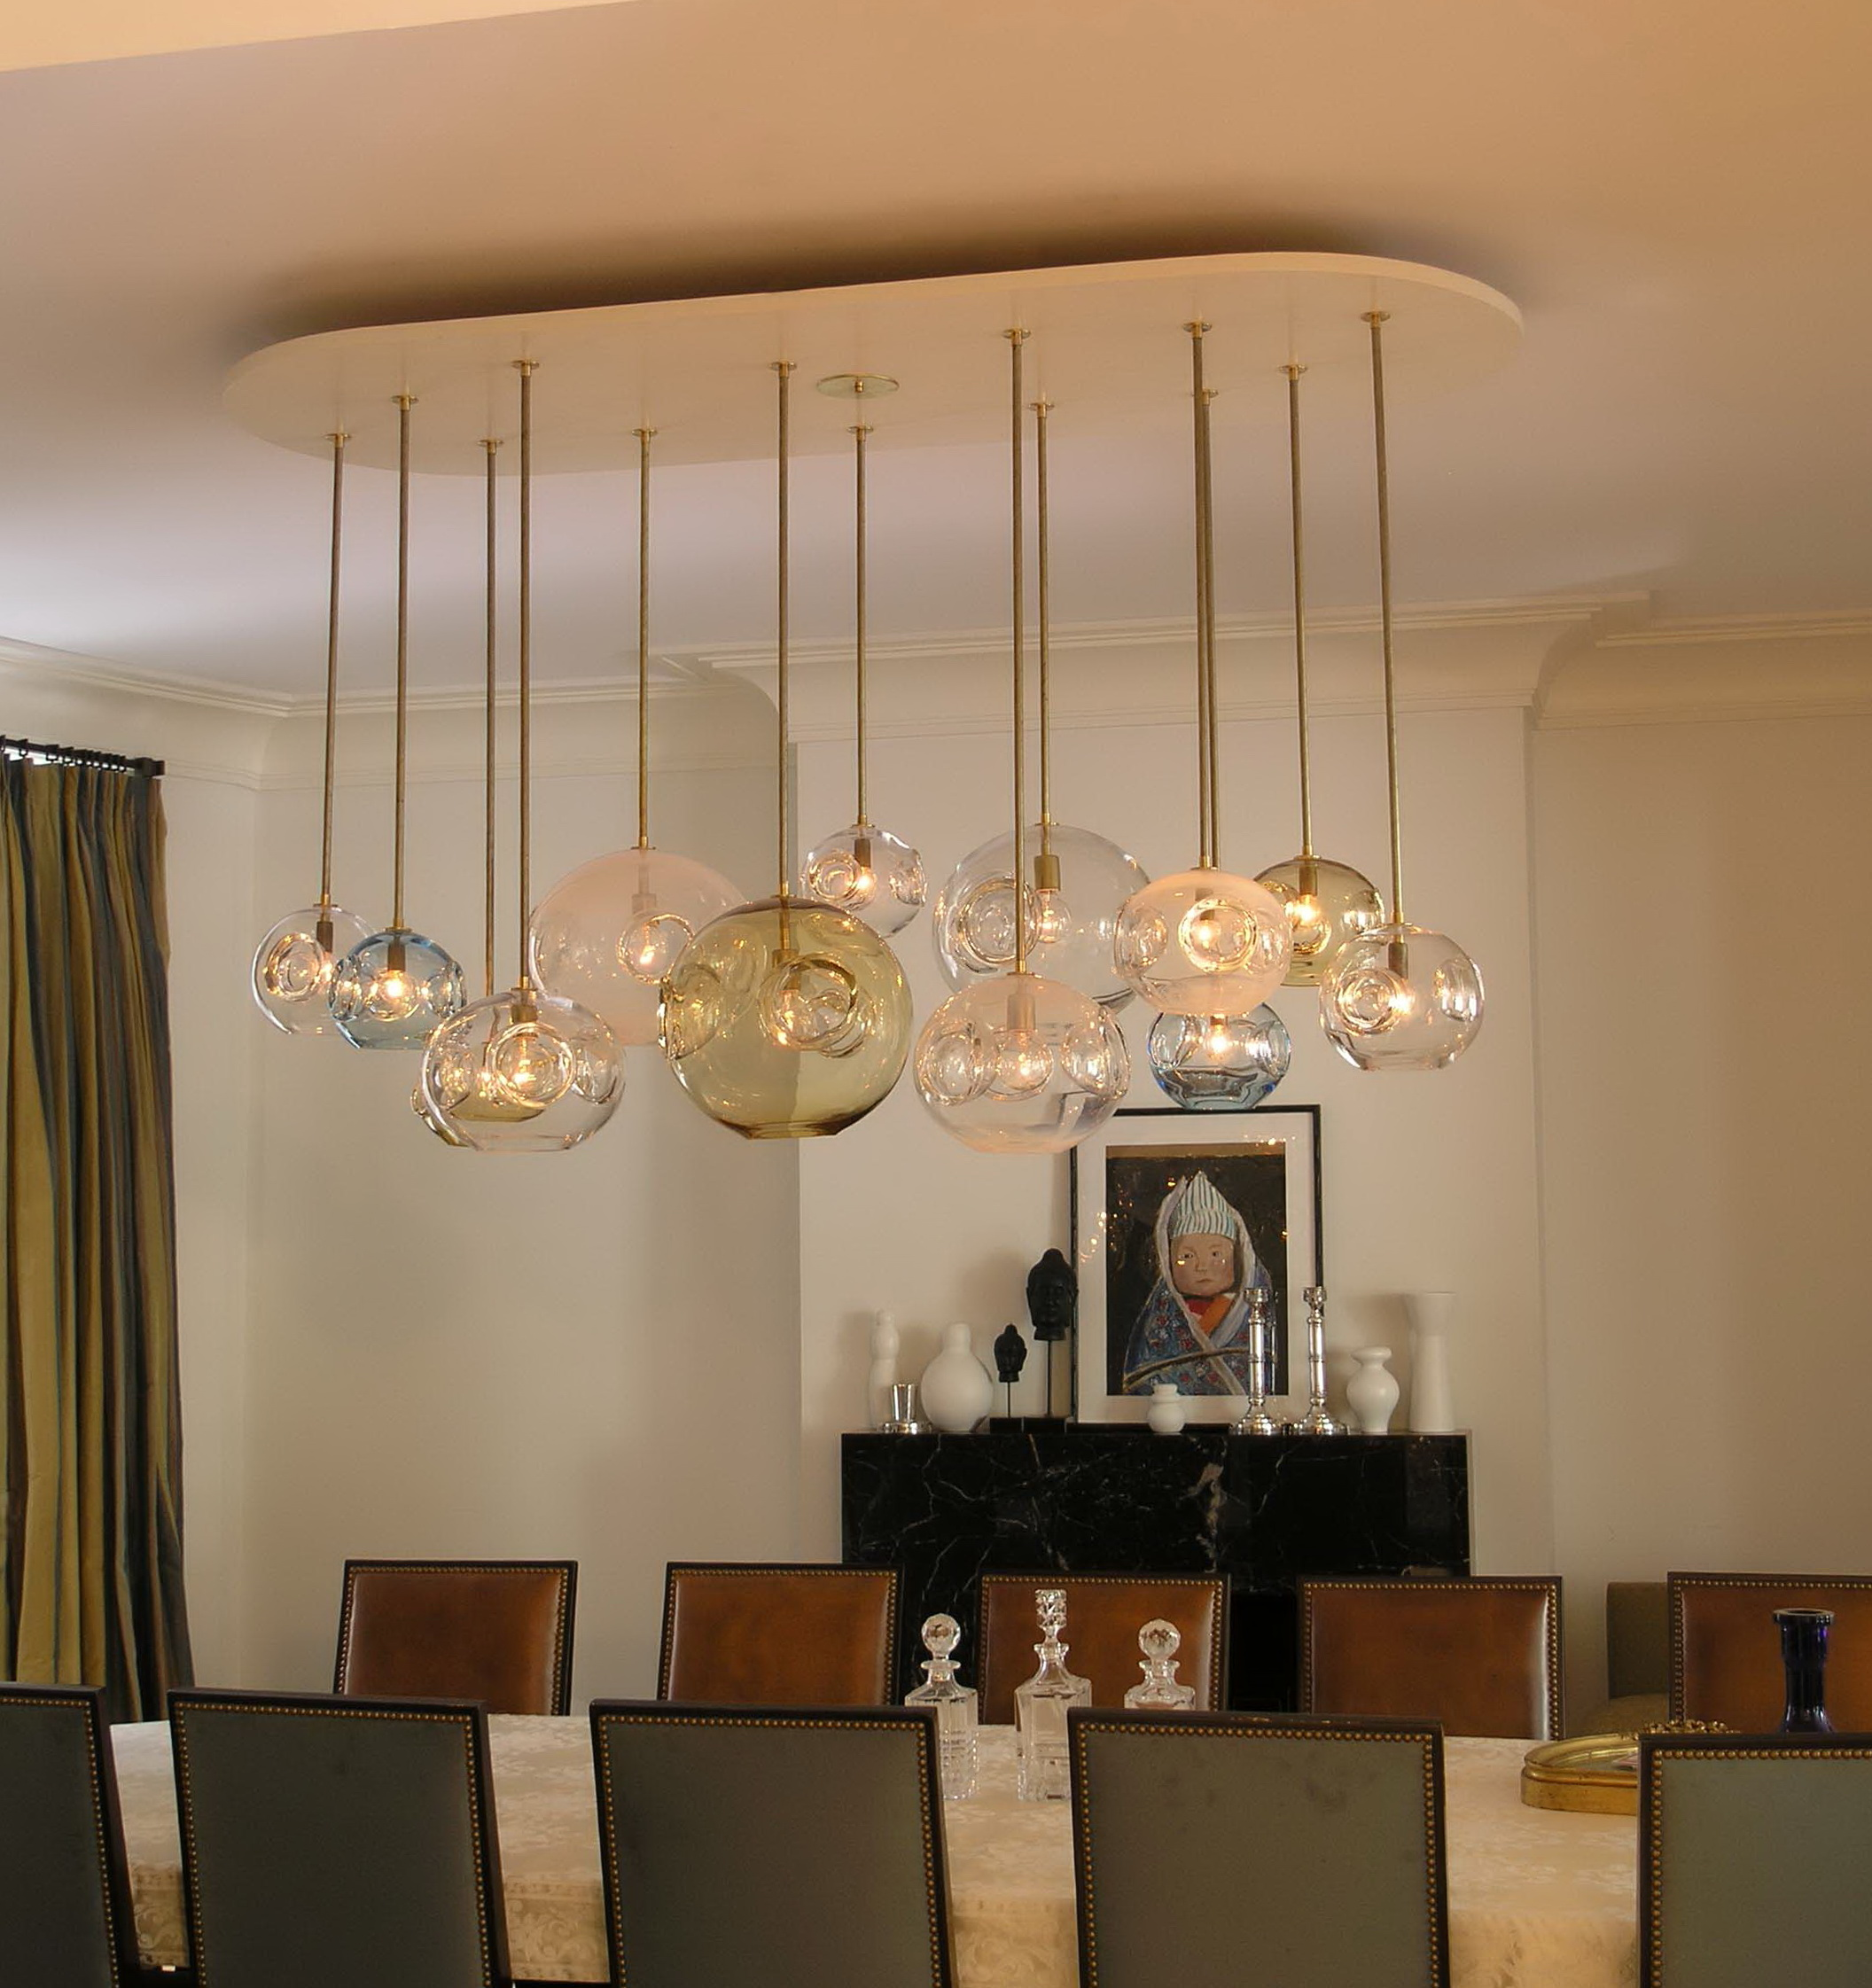 Simple Chandeliers For Dining Room | Home Design Ideas